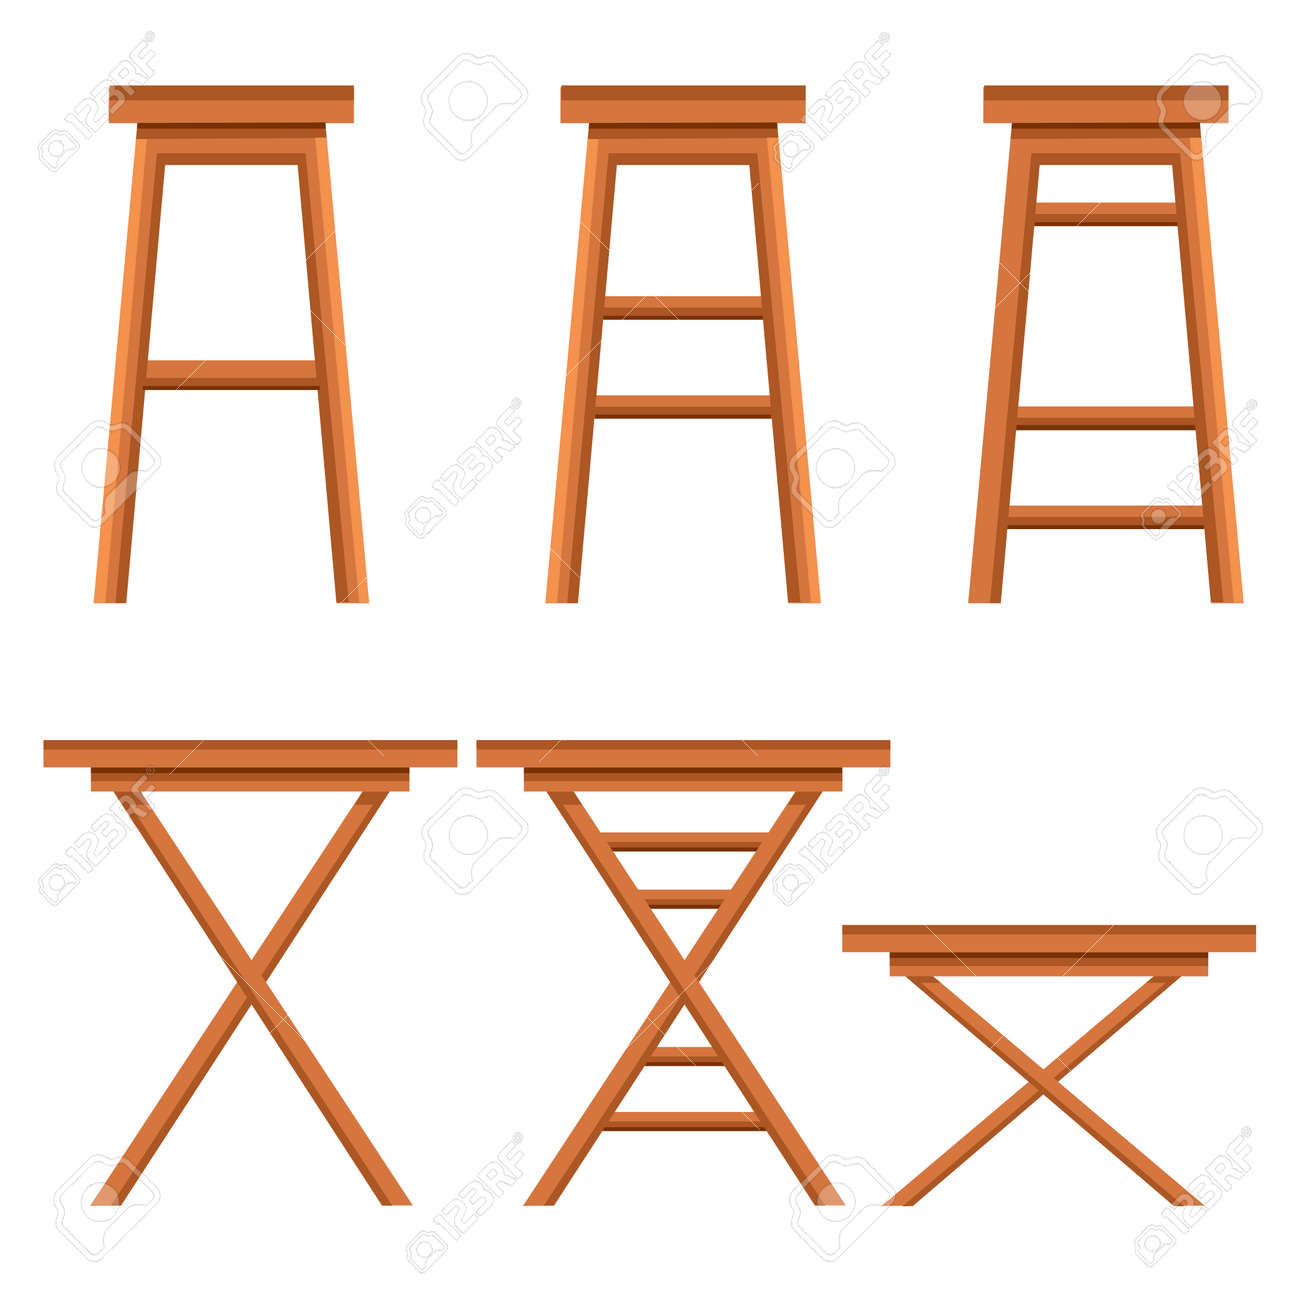 cafe chairs wooden recliner chair cheap set of bar ocher collection retro or stools flat